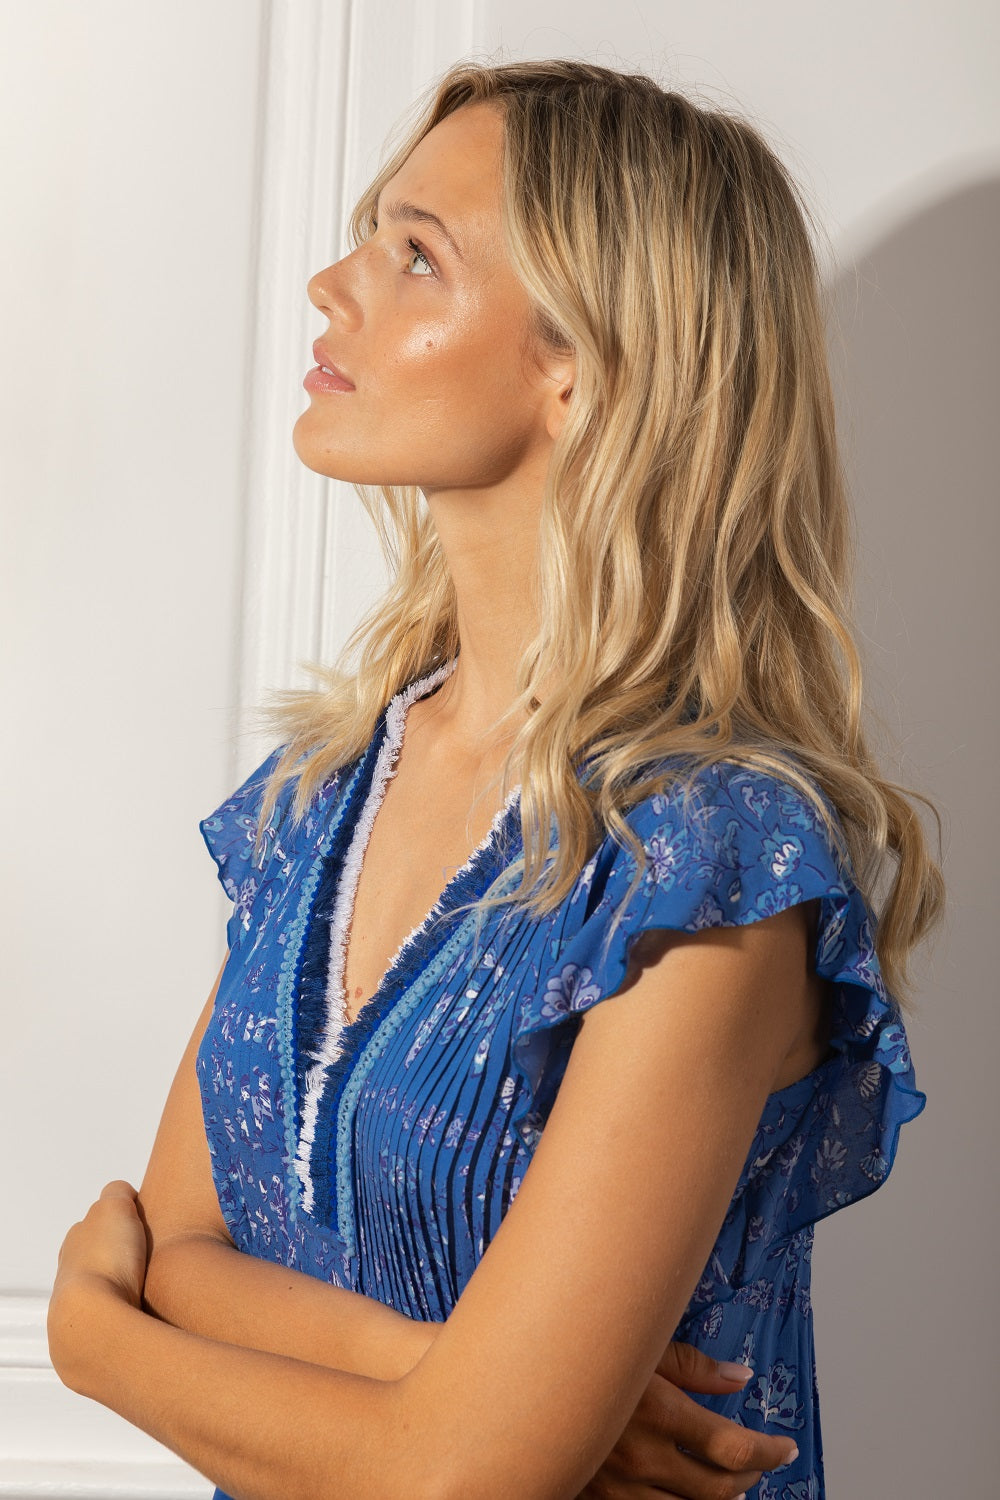 Mini Dress Sasha Lace Trimmed - Blue Foulard